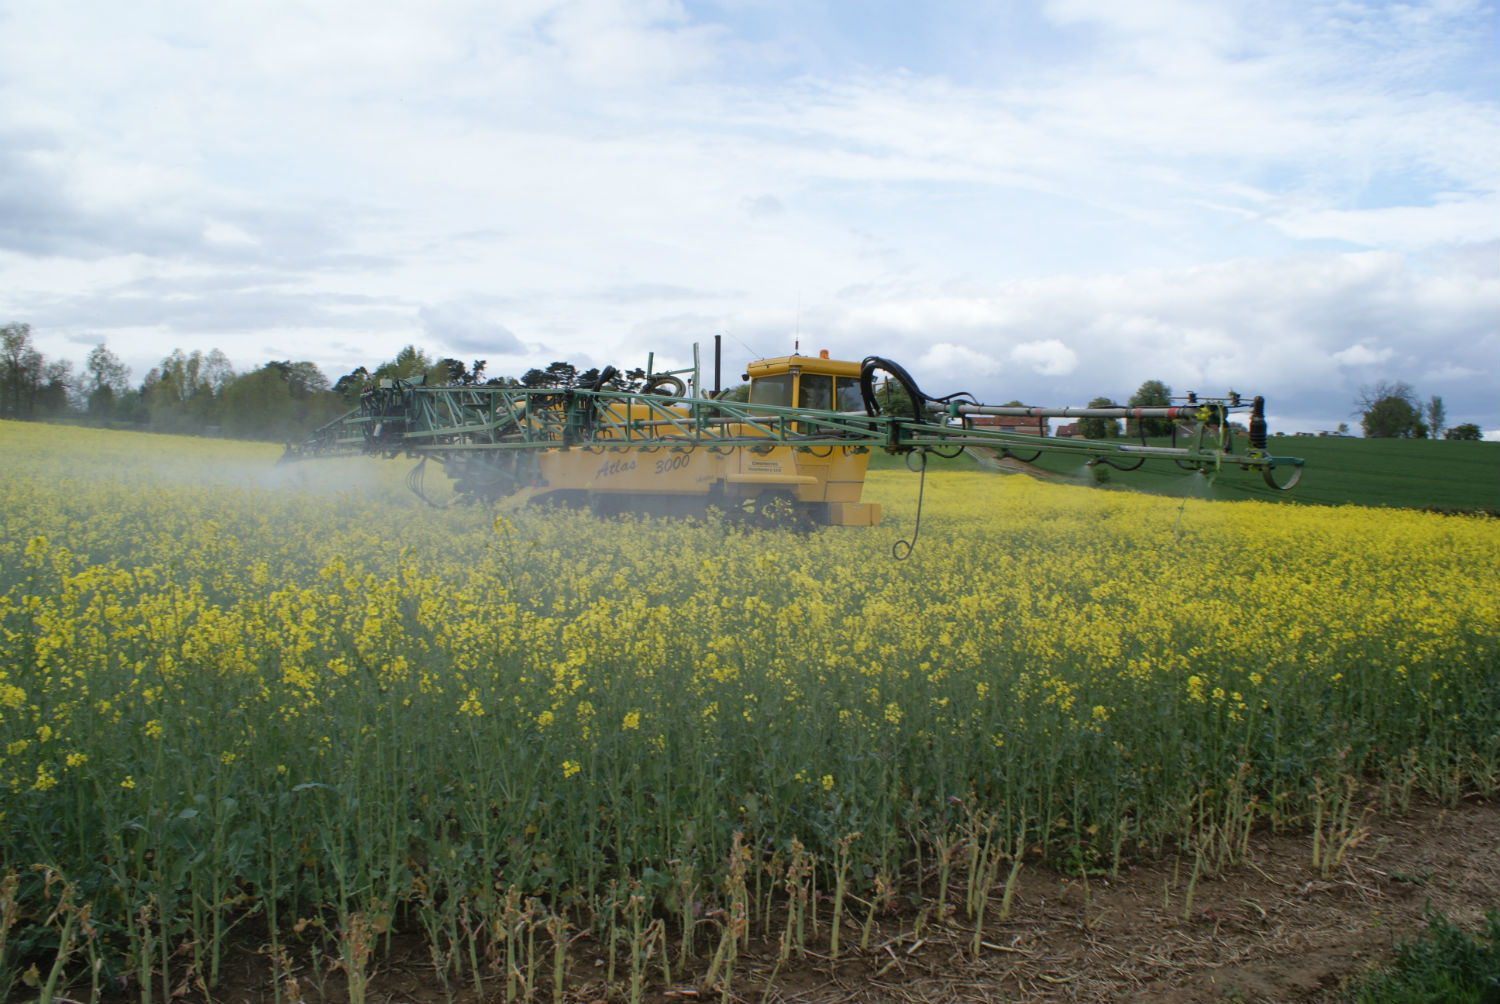 spraying insecticide over oilseed rape best practice to protect bees